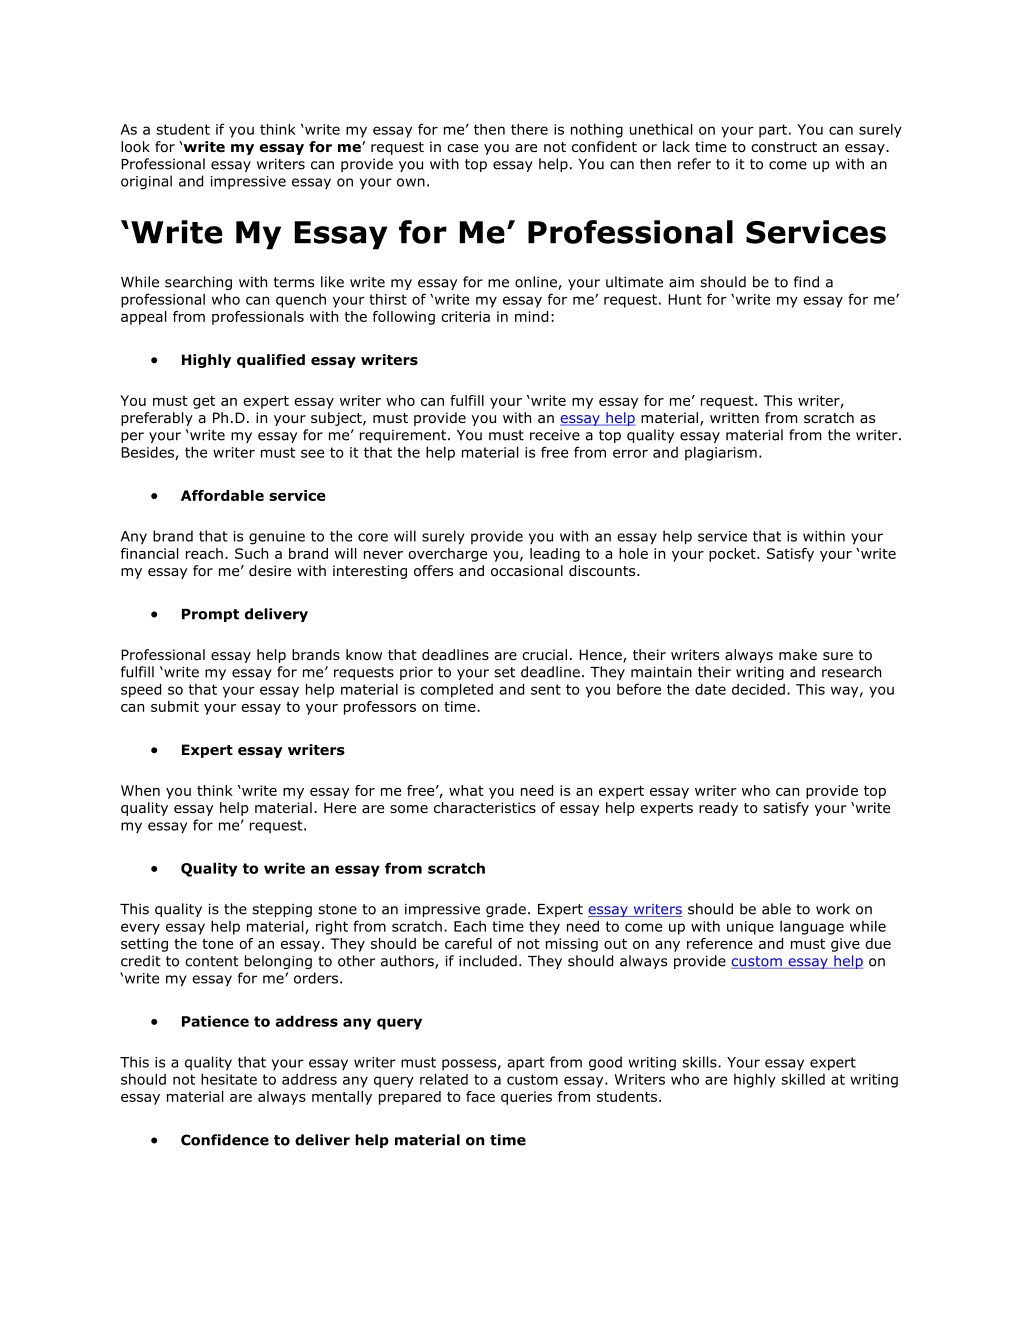 017 Write My Essay For Me Example As Student If You Think Surprising College Application Free Online Uk